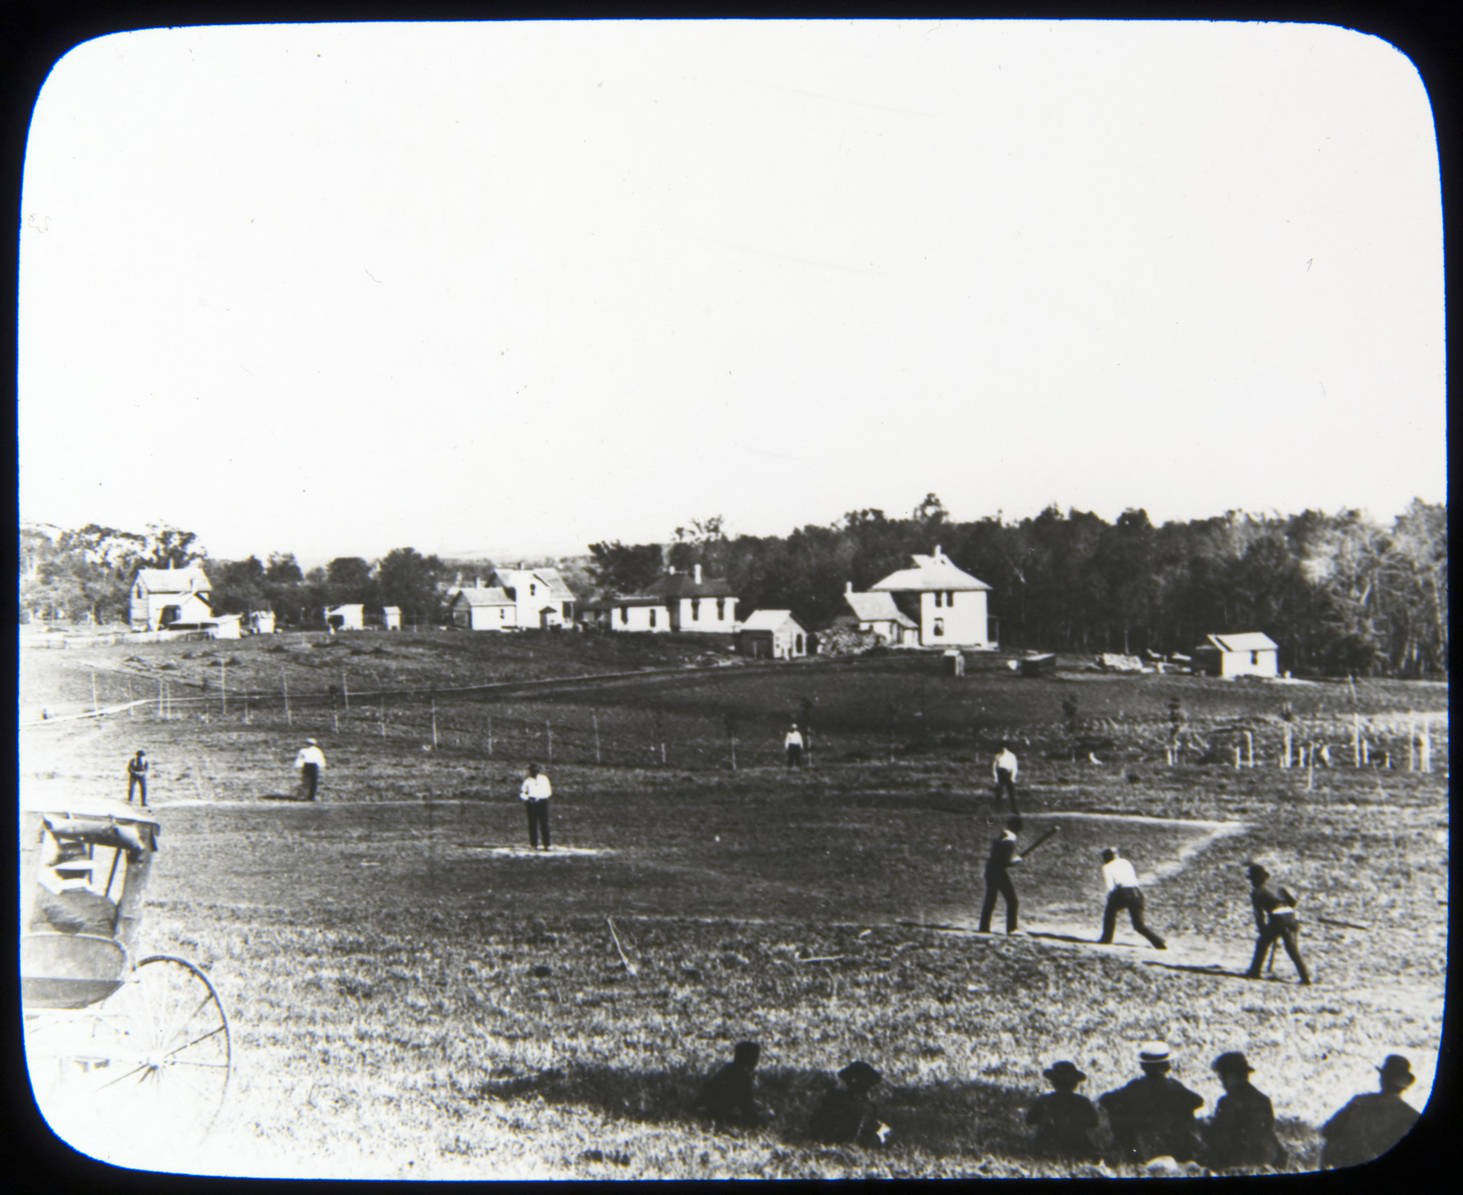 Early baseball game in Northfield, 1887